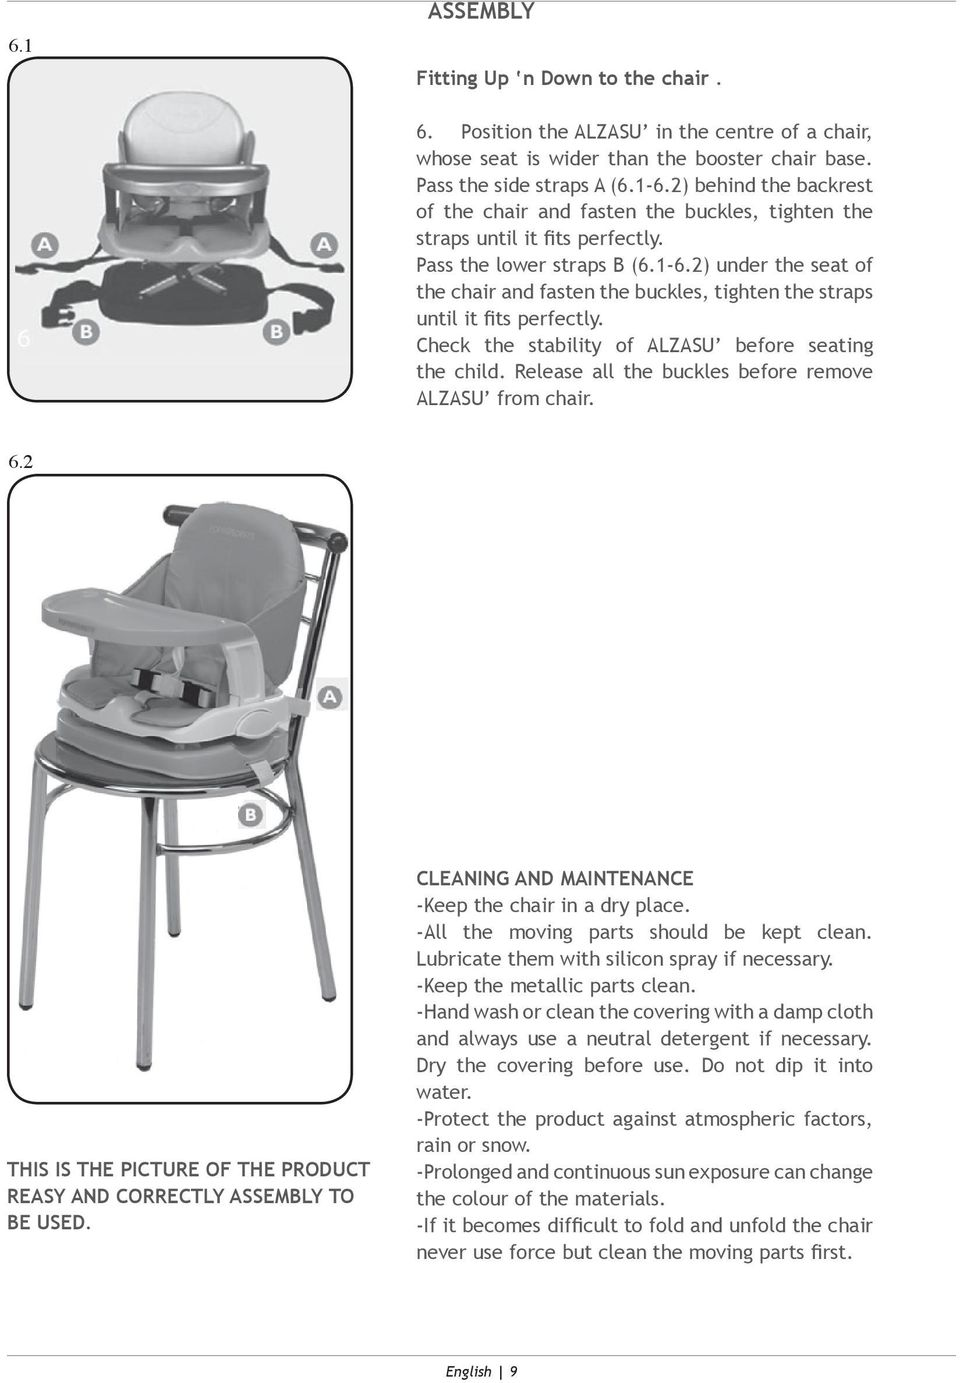 2) under the seat of the chair and fasten the buckles, tighten the straps until it fits perfectly. Check the stability of ALZASU before seating the child.